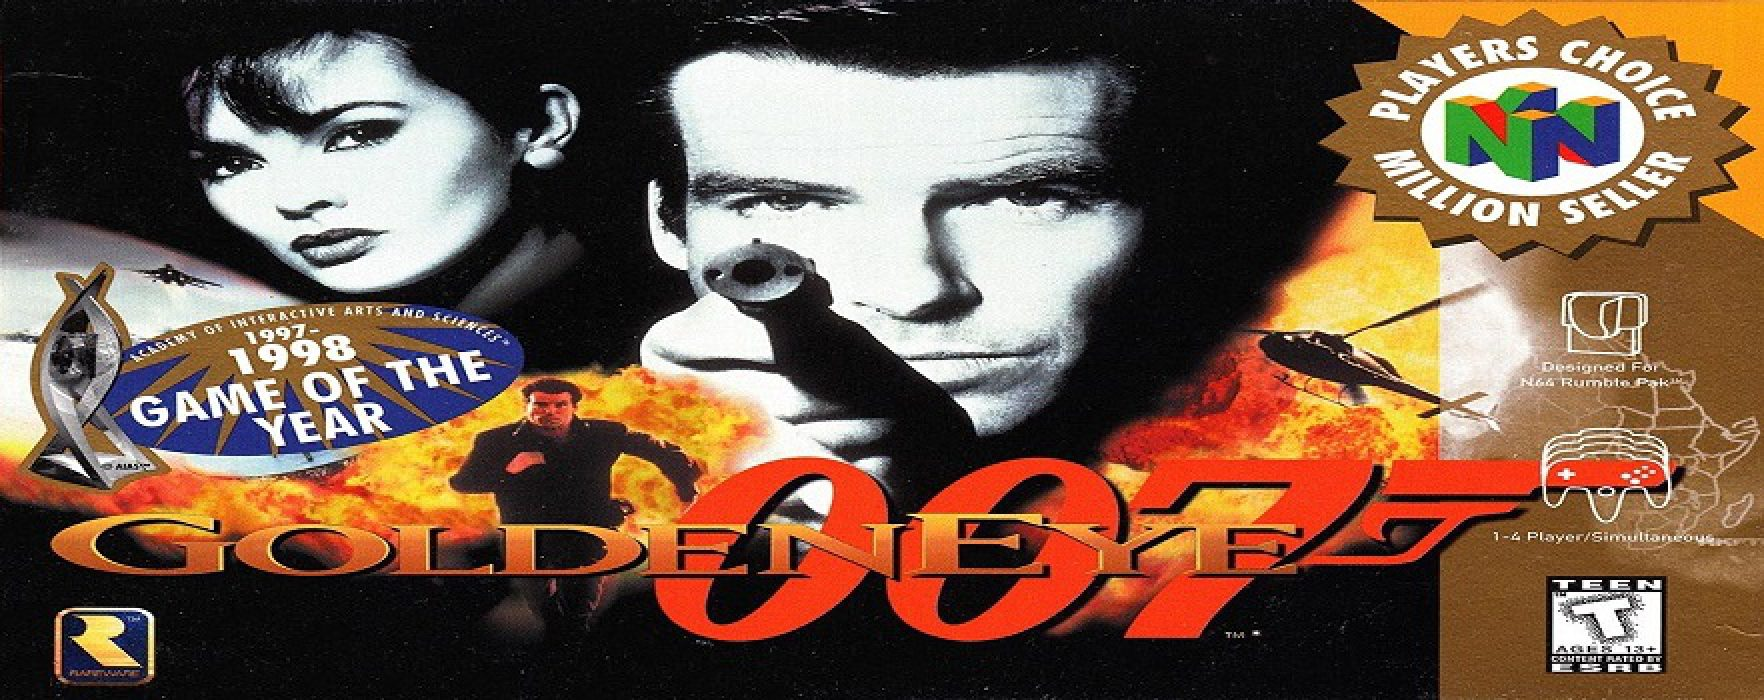 GoldenEye's Dam Mission Speedrunning Record Broken